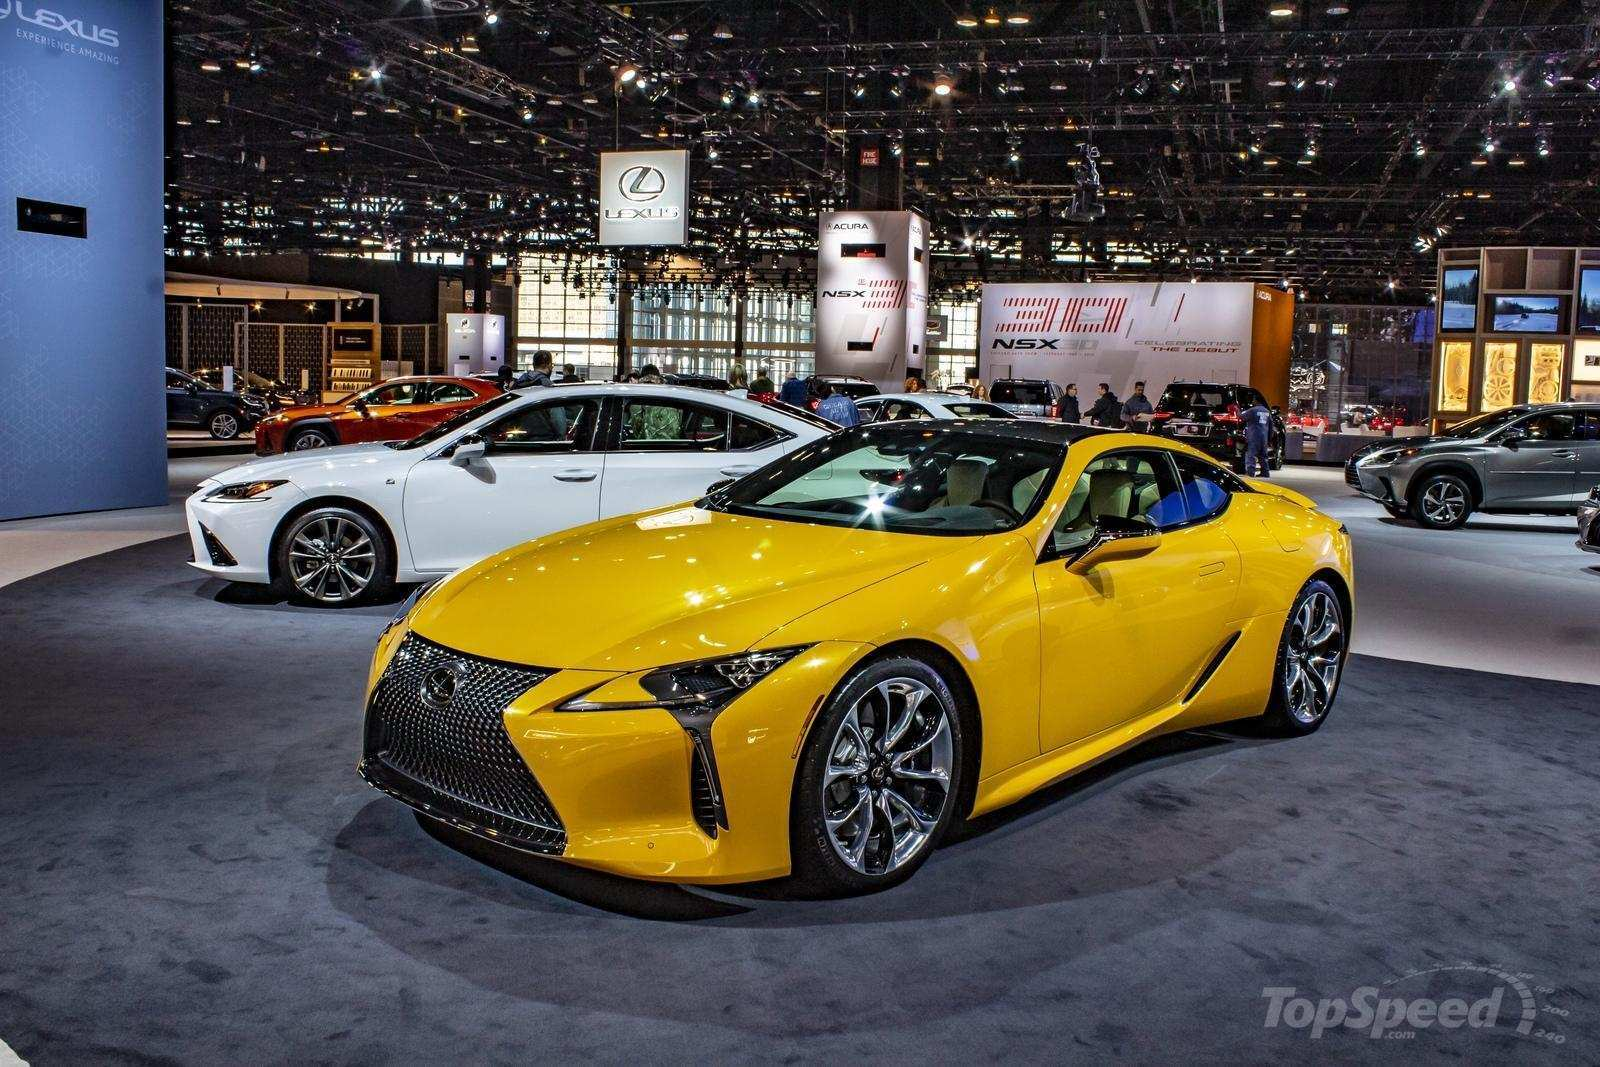 Lexus Lf Lc Price >> 43 New 2019 Lexus Lf Lc Price And Review For 2019 Lexus Lf Lc Car